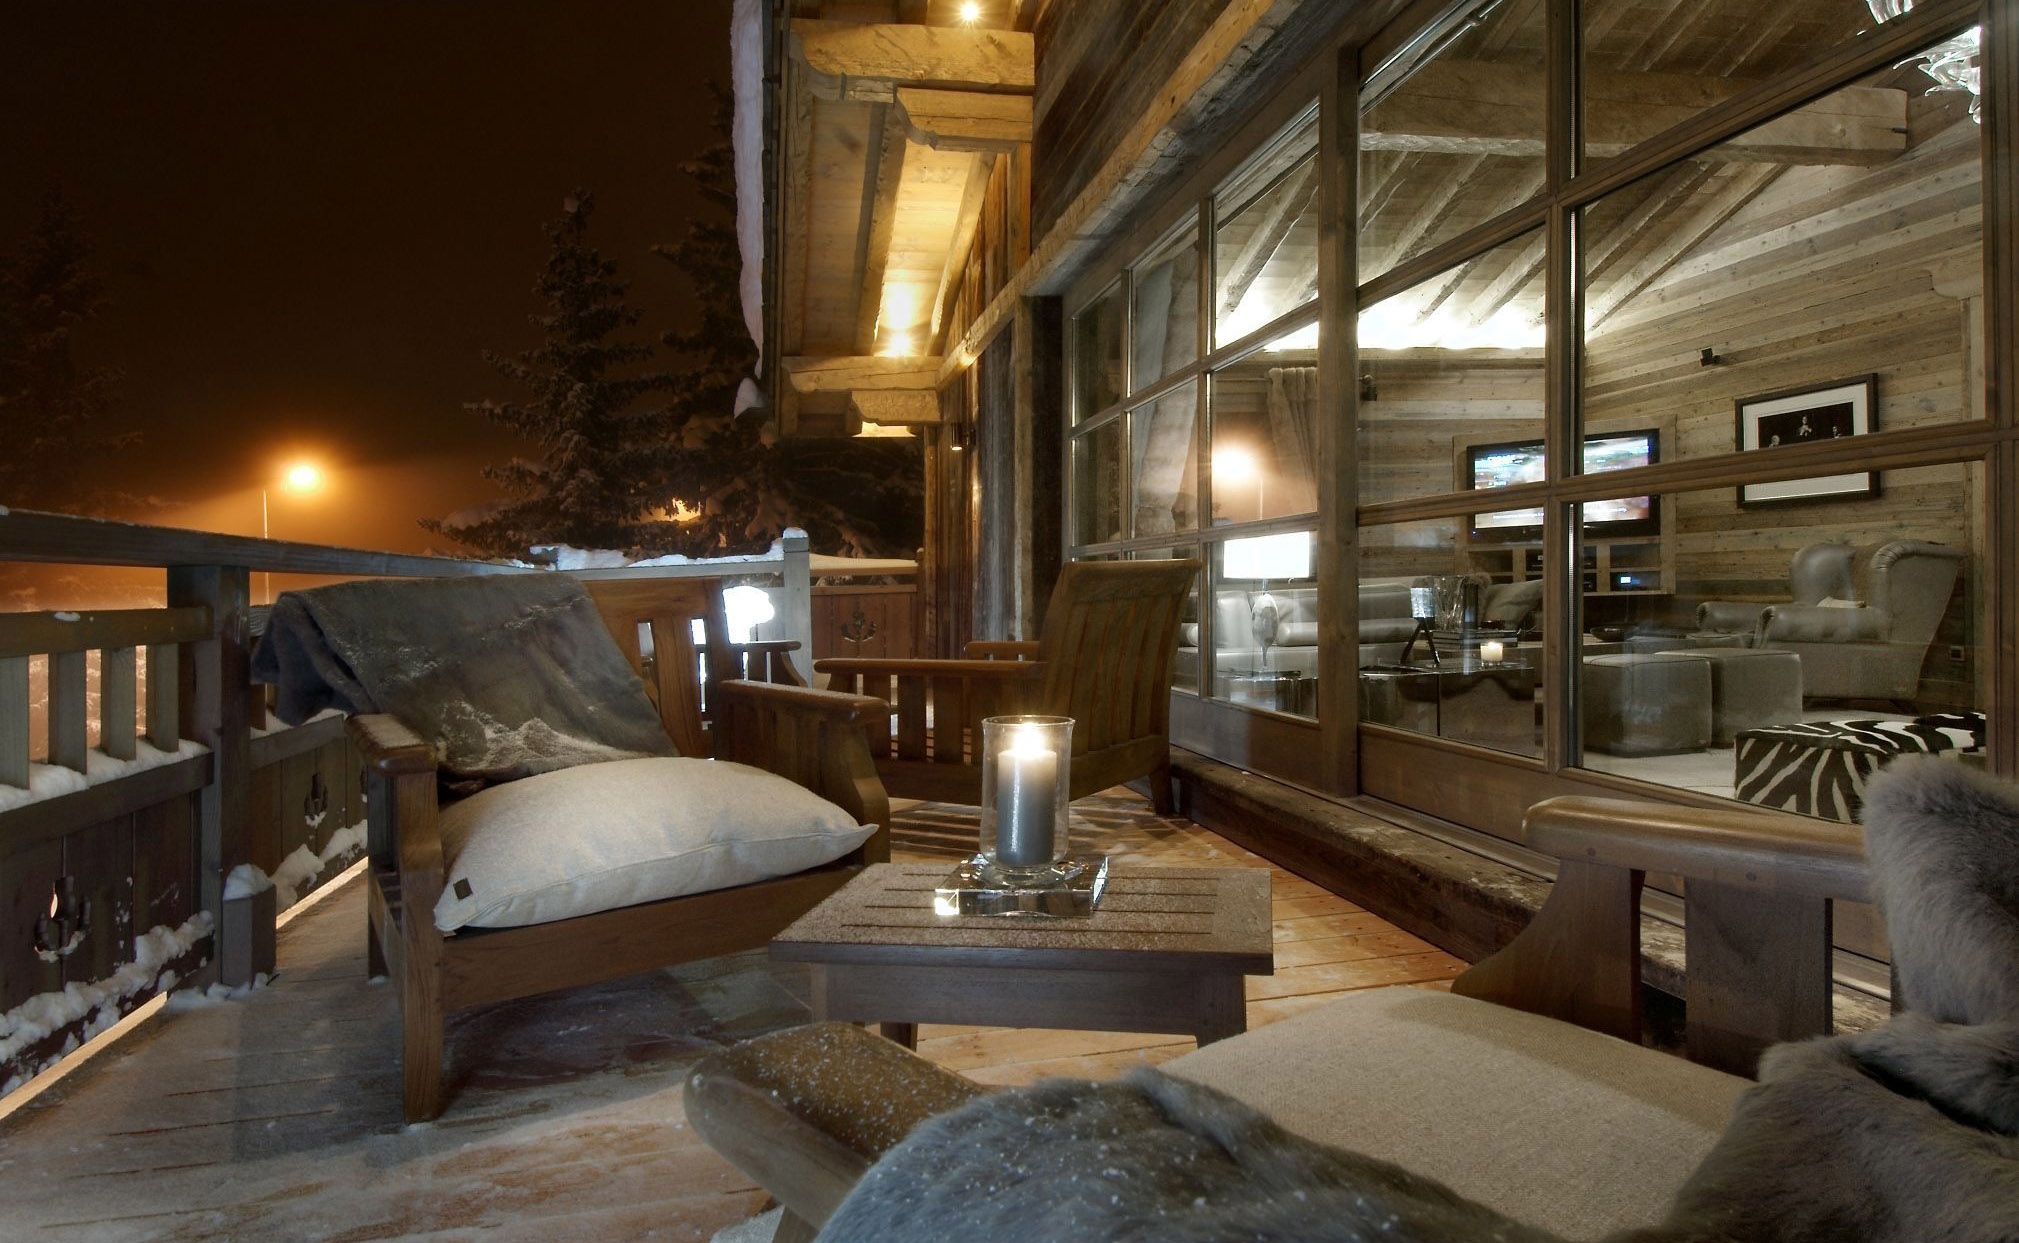 Lovelydays luxury service apartment rental - Courchevel - Great Roc Chalet - Partner - 7 bedrooms - 6 bathrooms - Balcony with view - 580f4287843e - Lovelydays